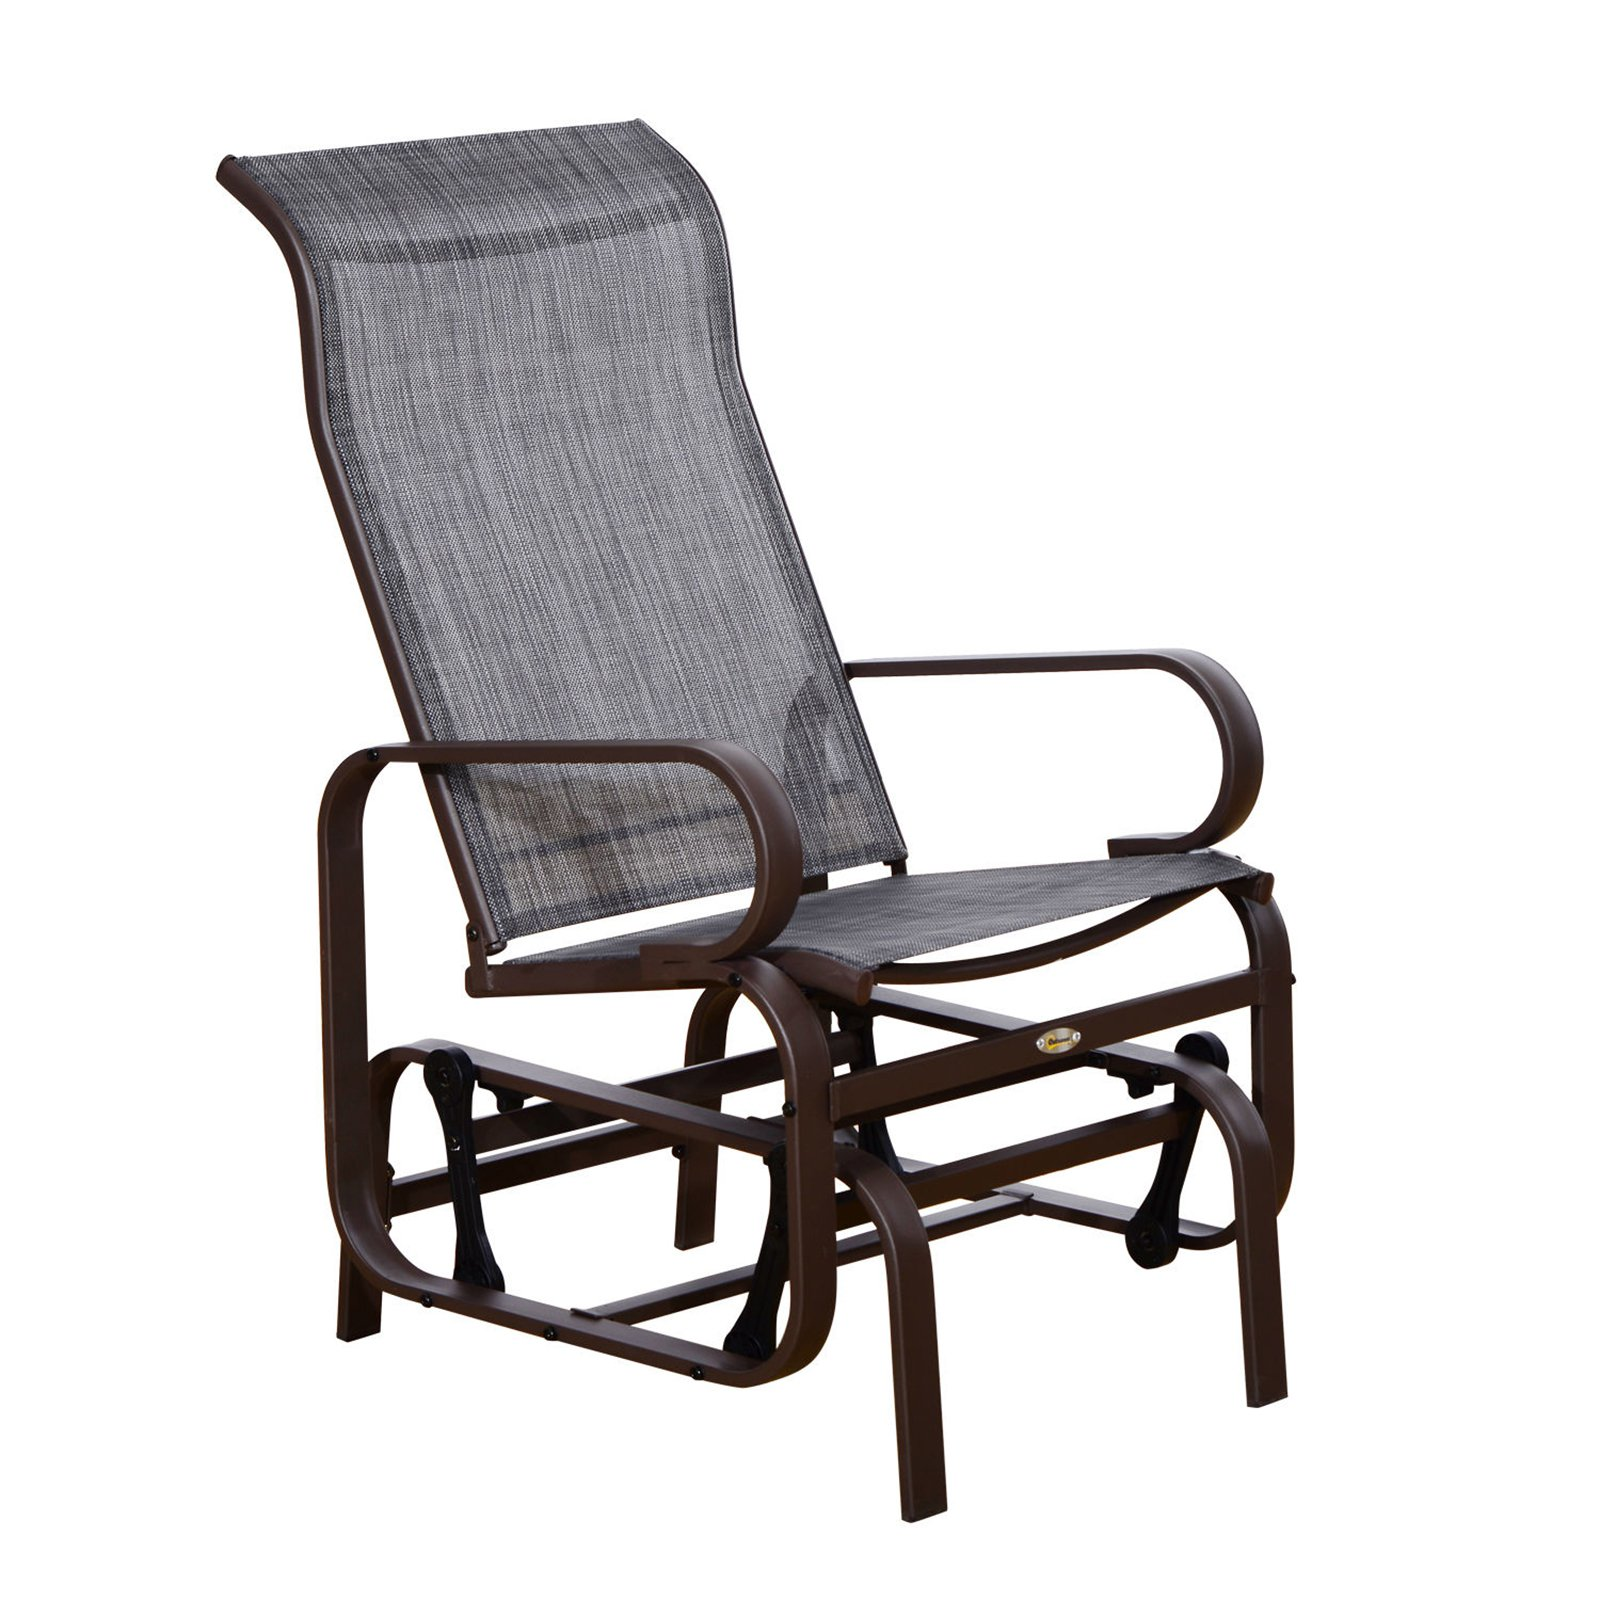 Outsunny Mesh Fabric Patio Glider Chair